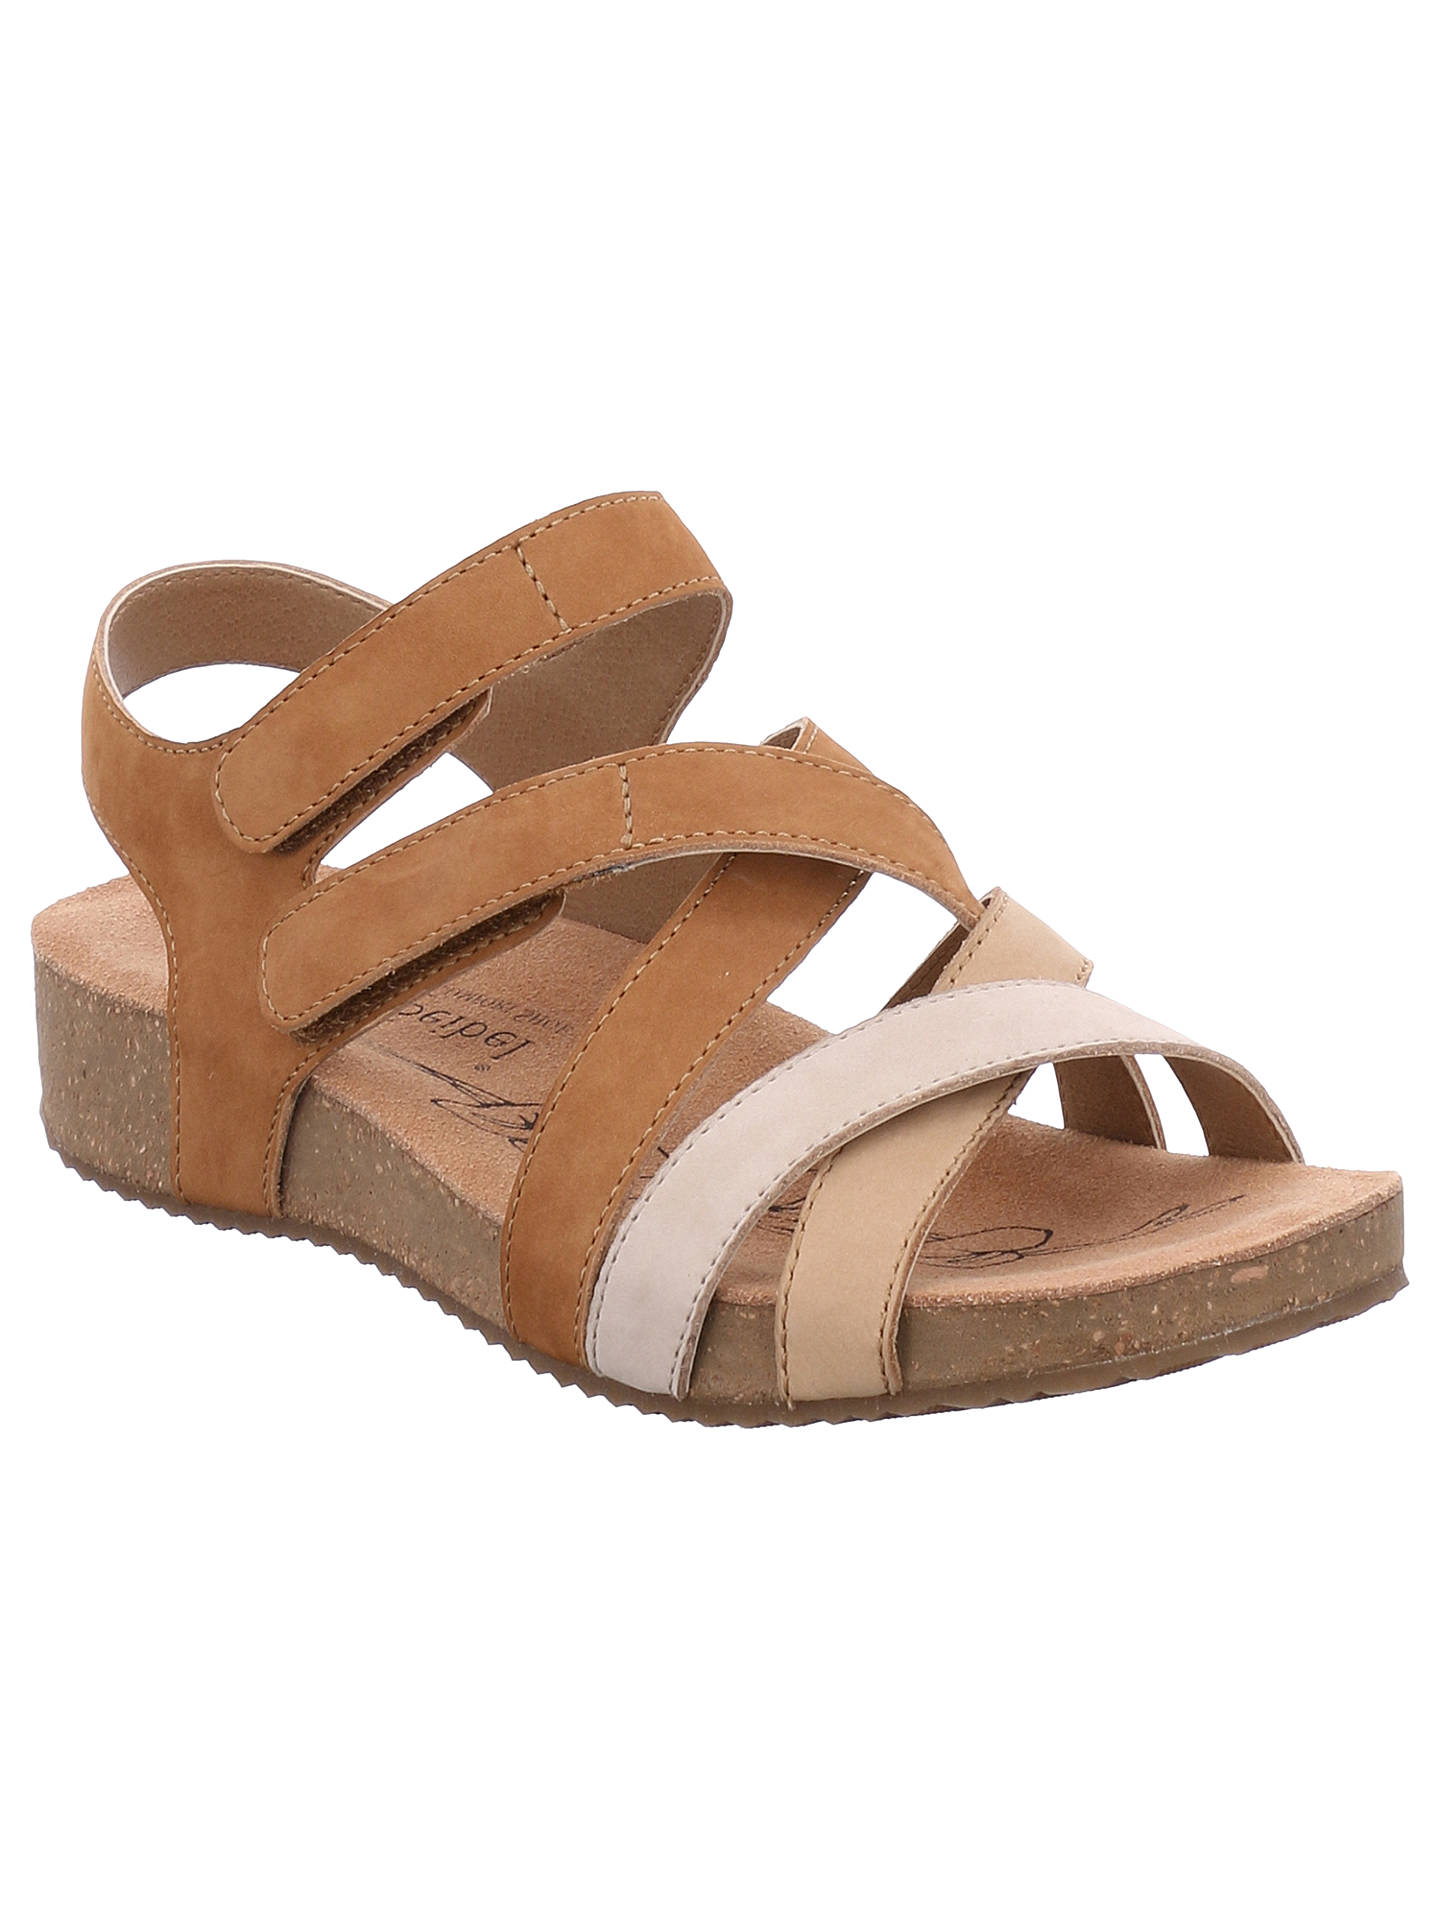 Josef Seibel Tonga 37 Sandals, Natural Leather at John Lewis